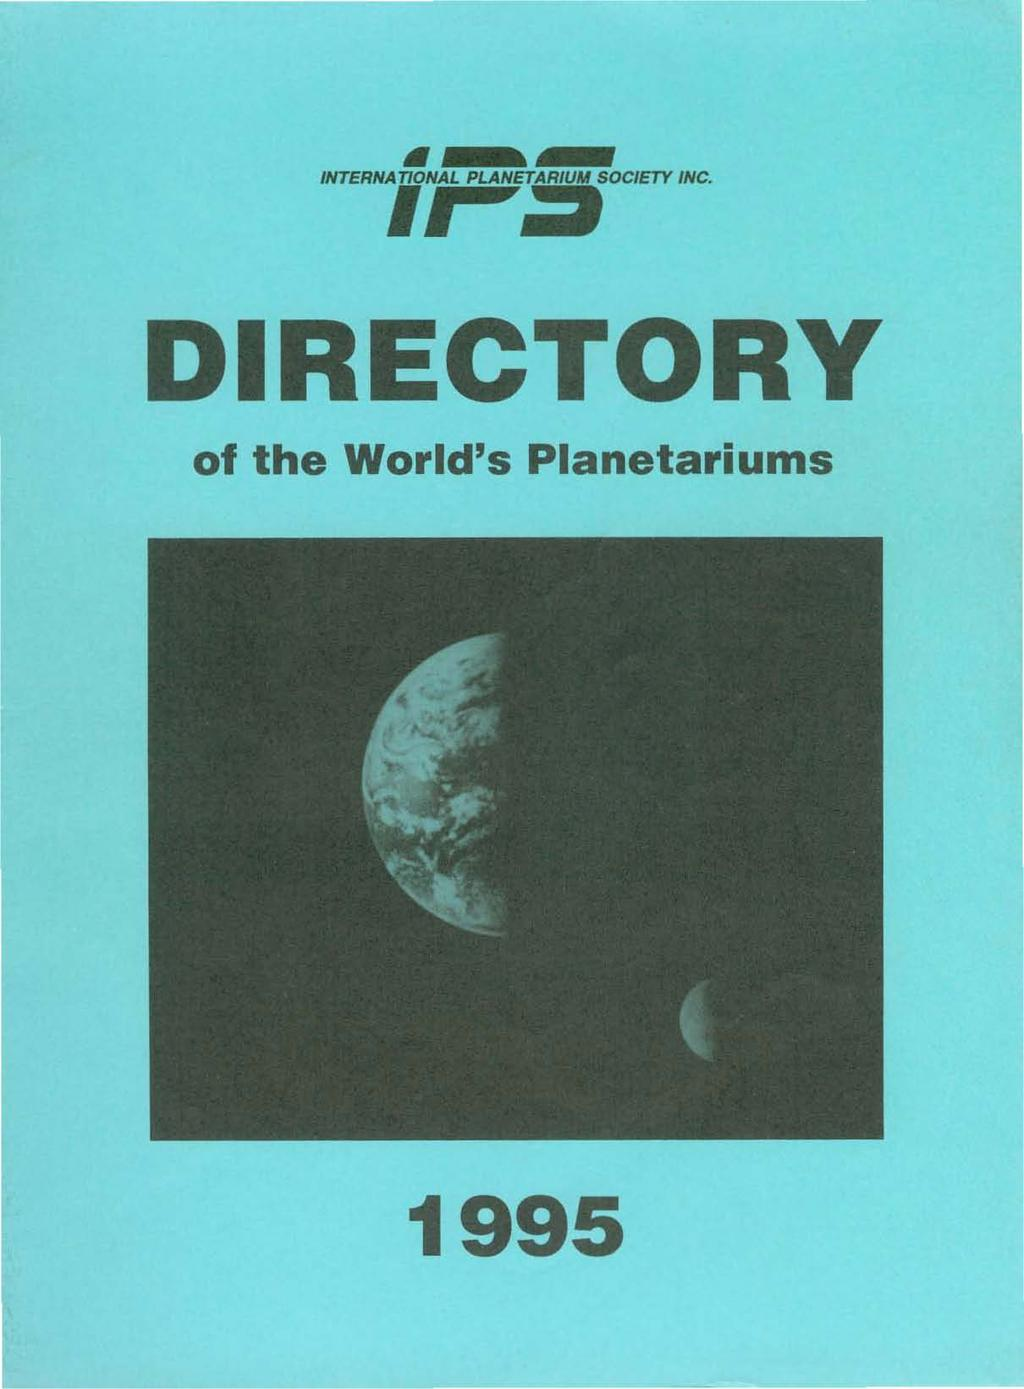 Intern1f50ciety Directory Of The Worlds Planetariums Pdf - Modern-white-interior-house-in-kharkov-by-vladimir-latkin